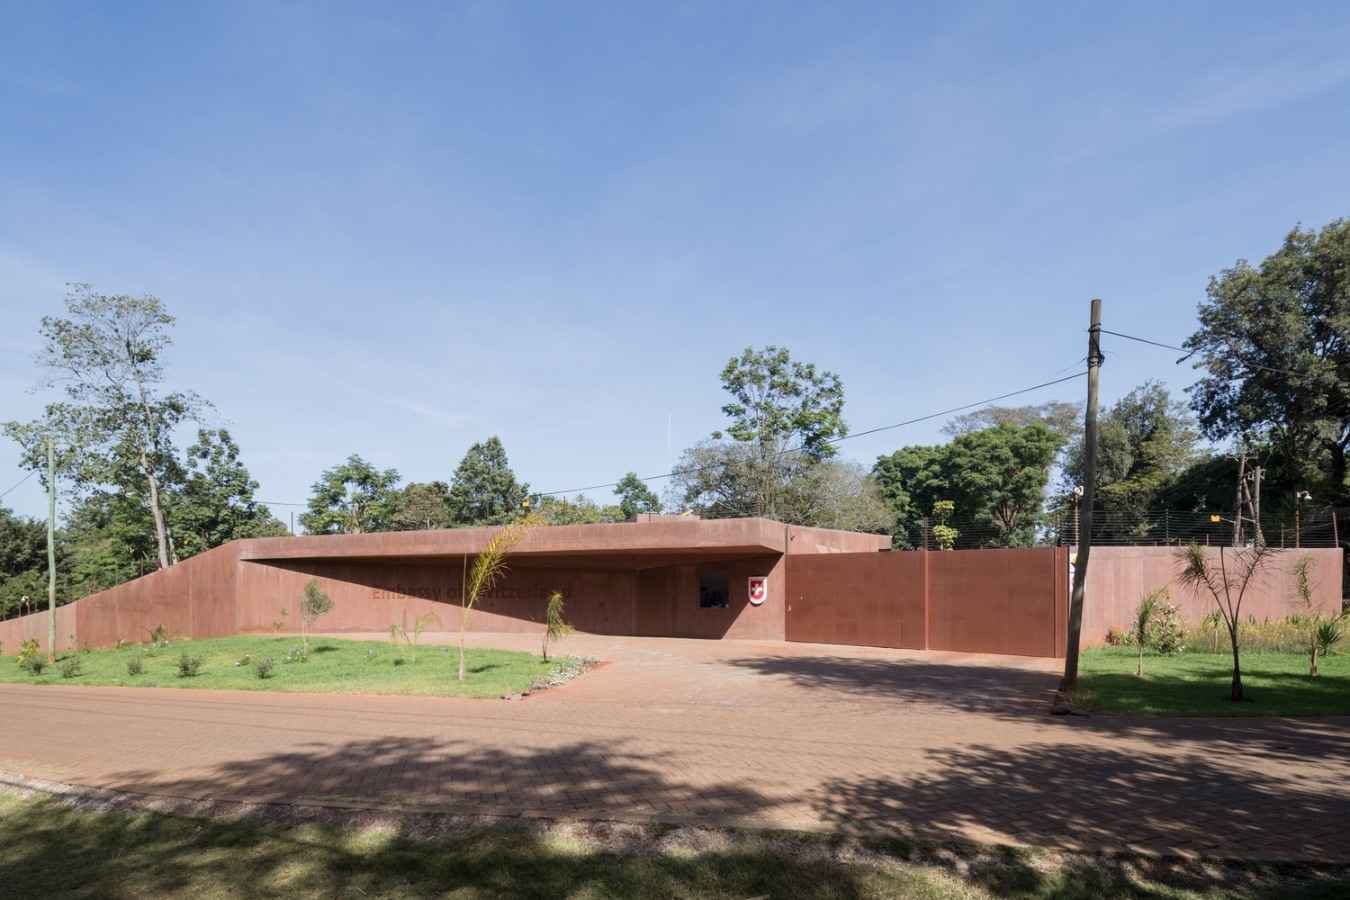 10_Swiss Embassy in Nairobi_ro.ma. architekten_Inspirationist